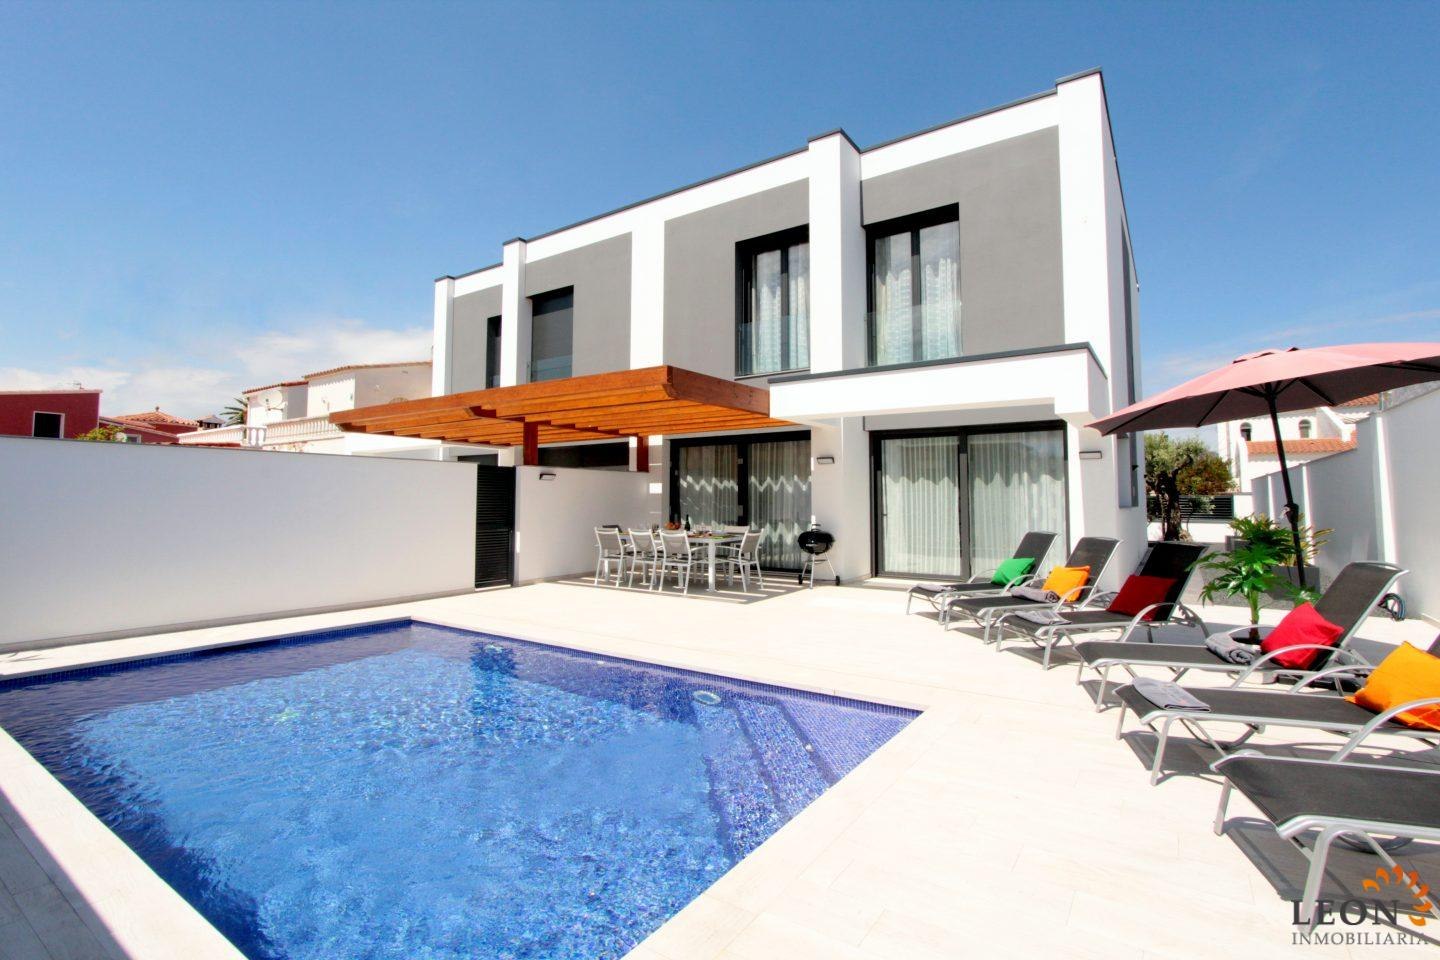 Luxury Holiday Villa With Pool New Luxury Holiday Villa For 8 Persons With Heated Pool Beautiful